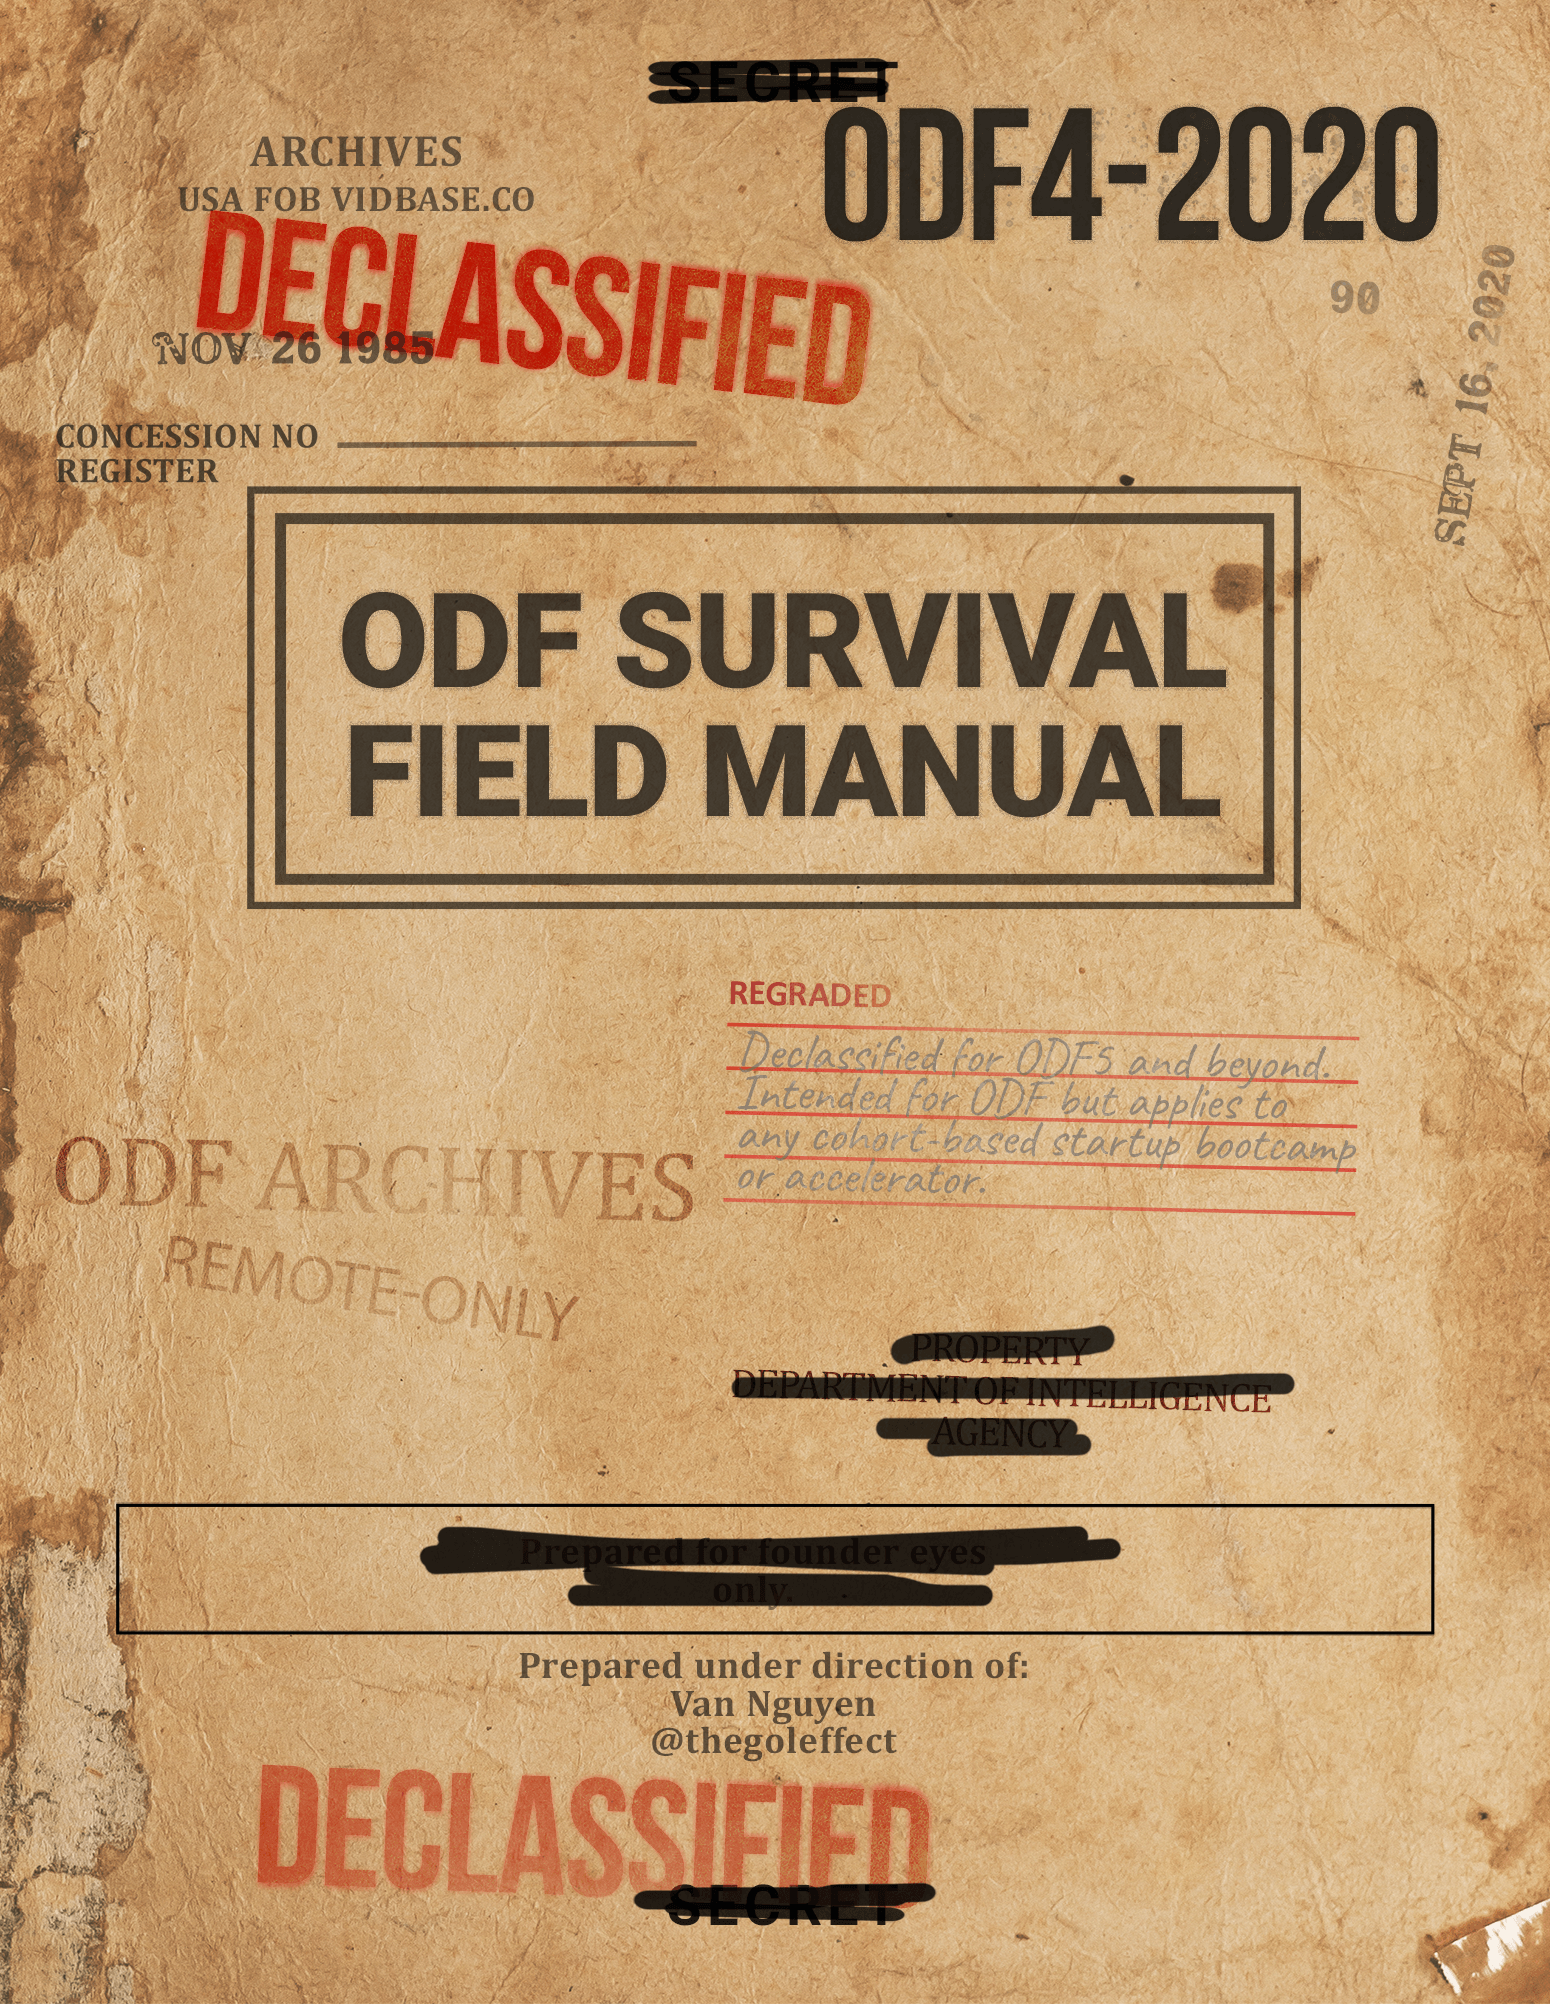 """Antique, faded book cover for """"ODF Survival Field Manual"""" with redactions, declassified stamps, and signs of wear and aging."""